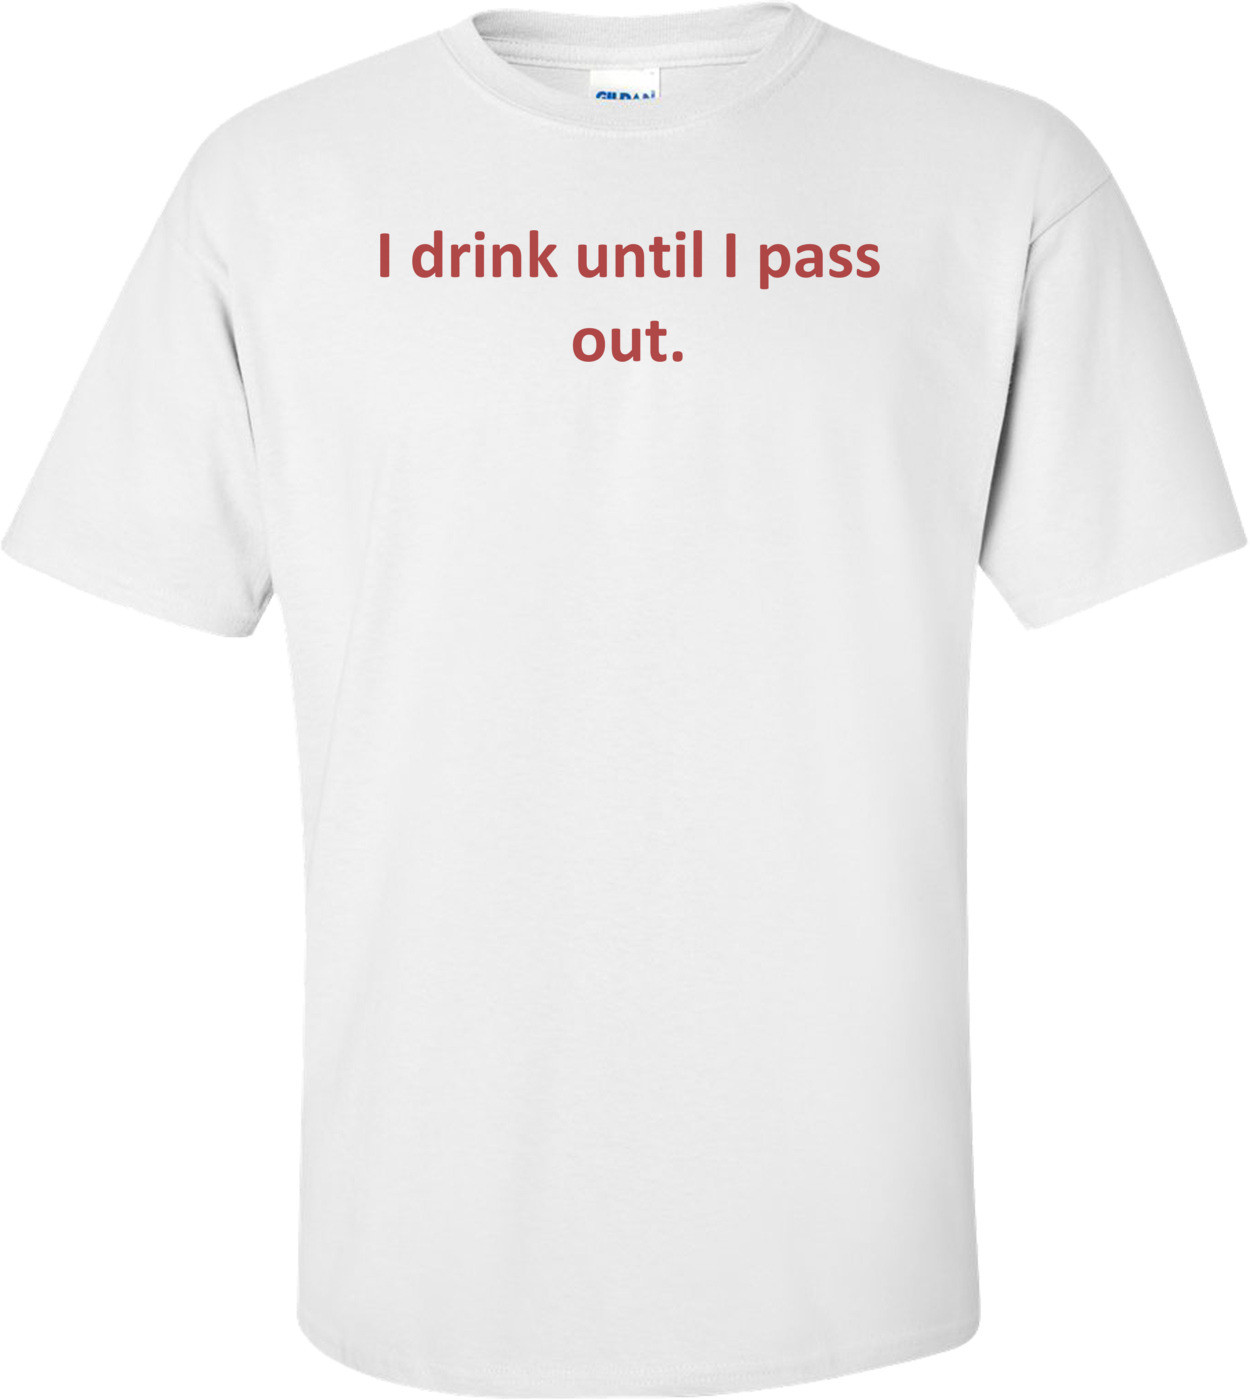 I drink until I pass out. T-Shirt